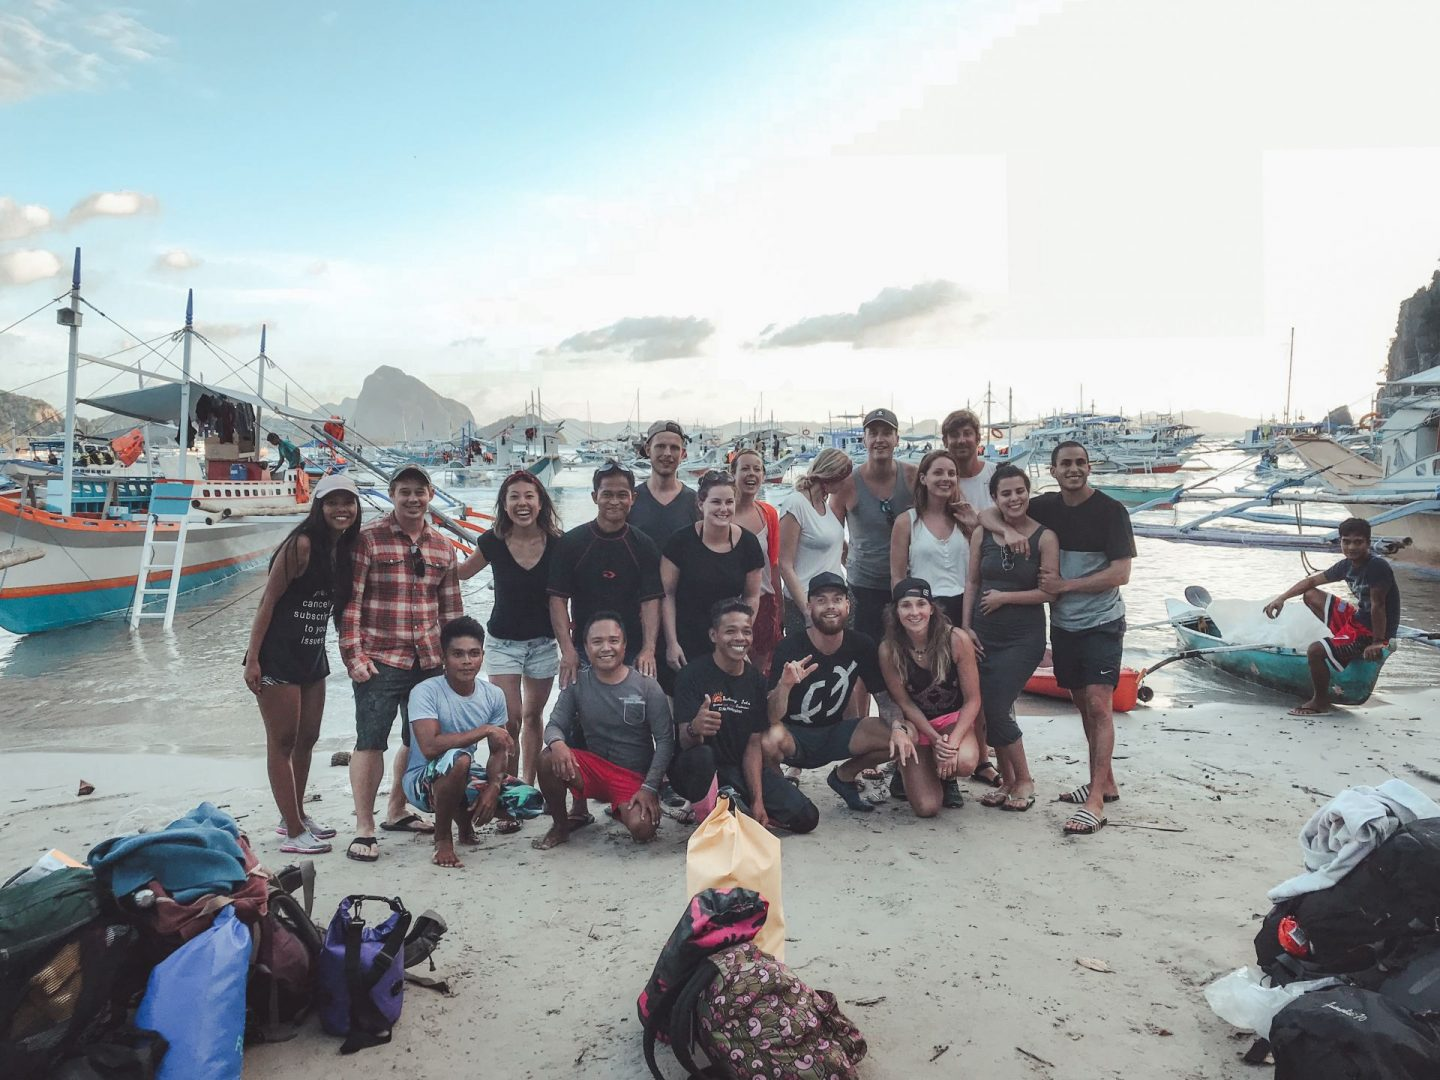 Our deserted island tour group and crew